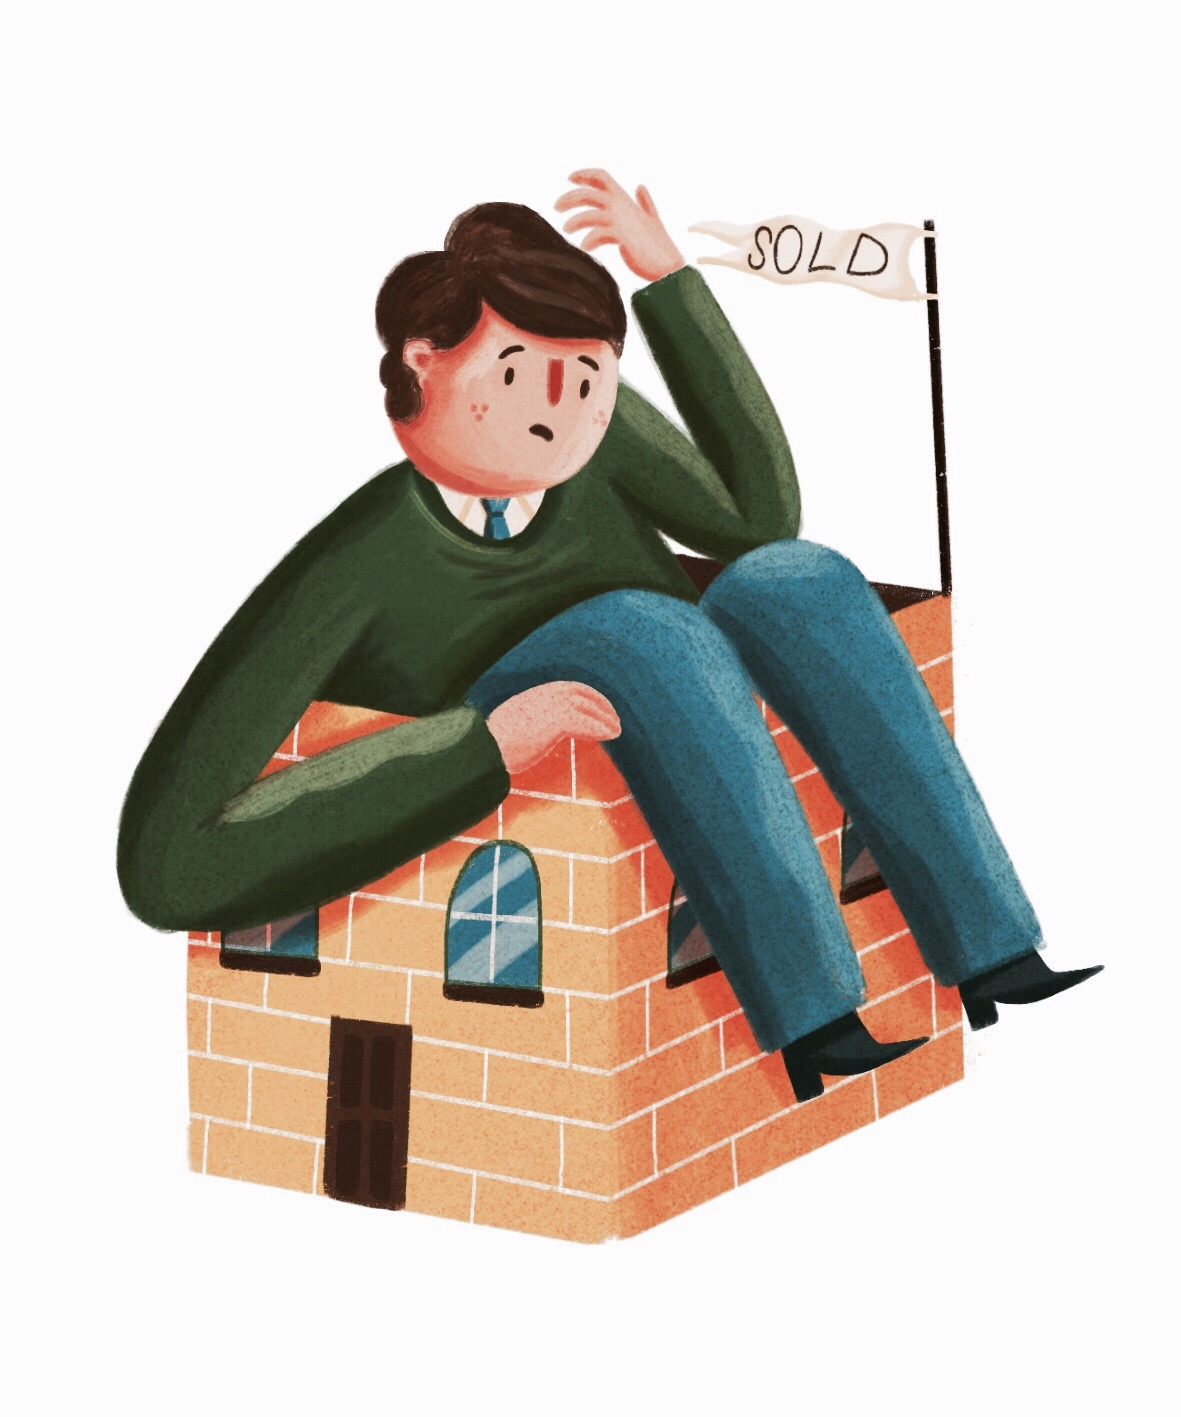 Young Homeowner: The Guardian